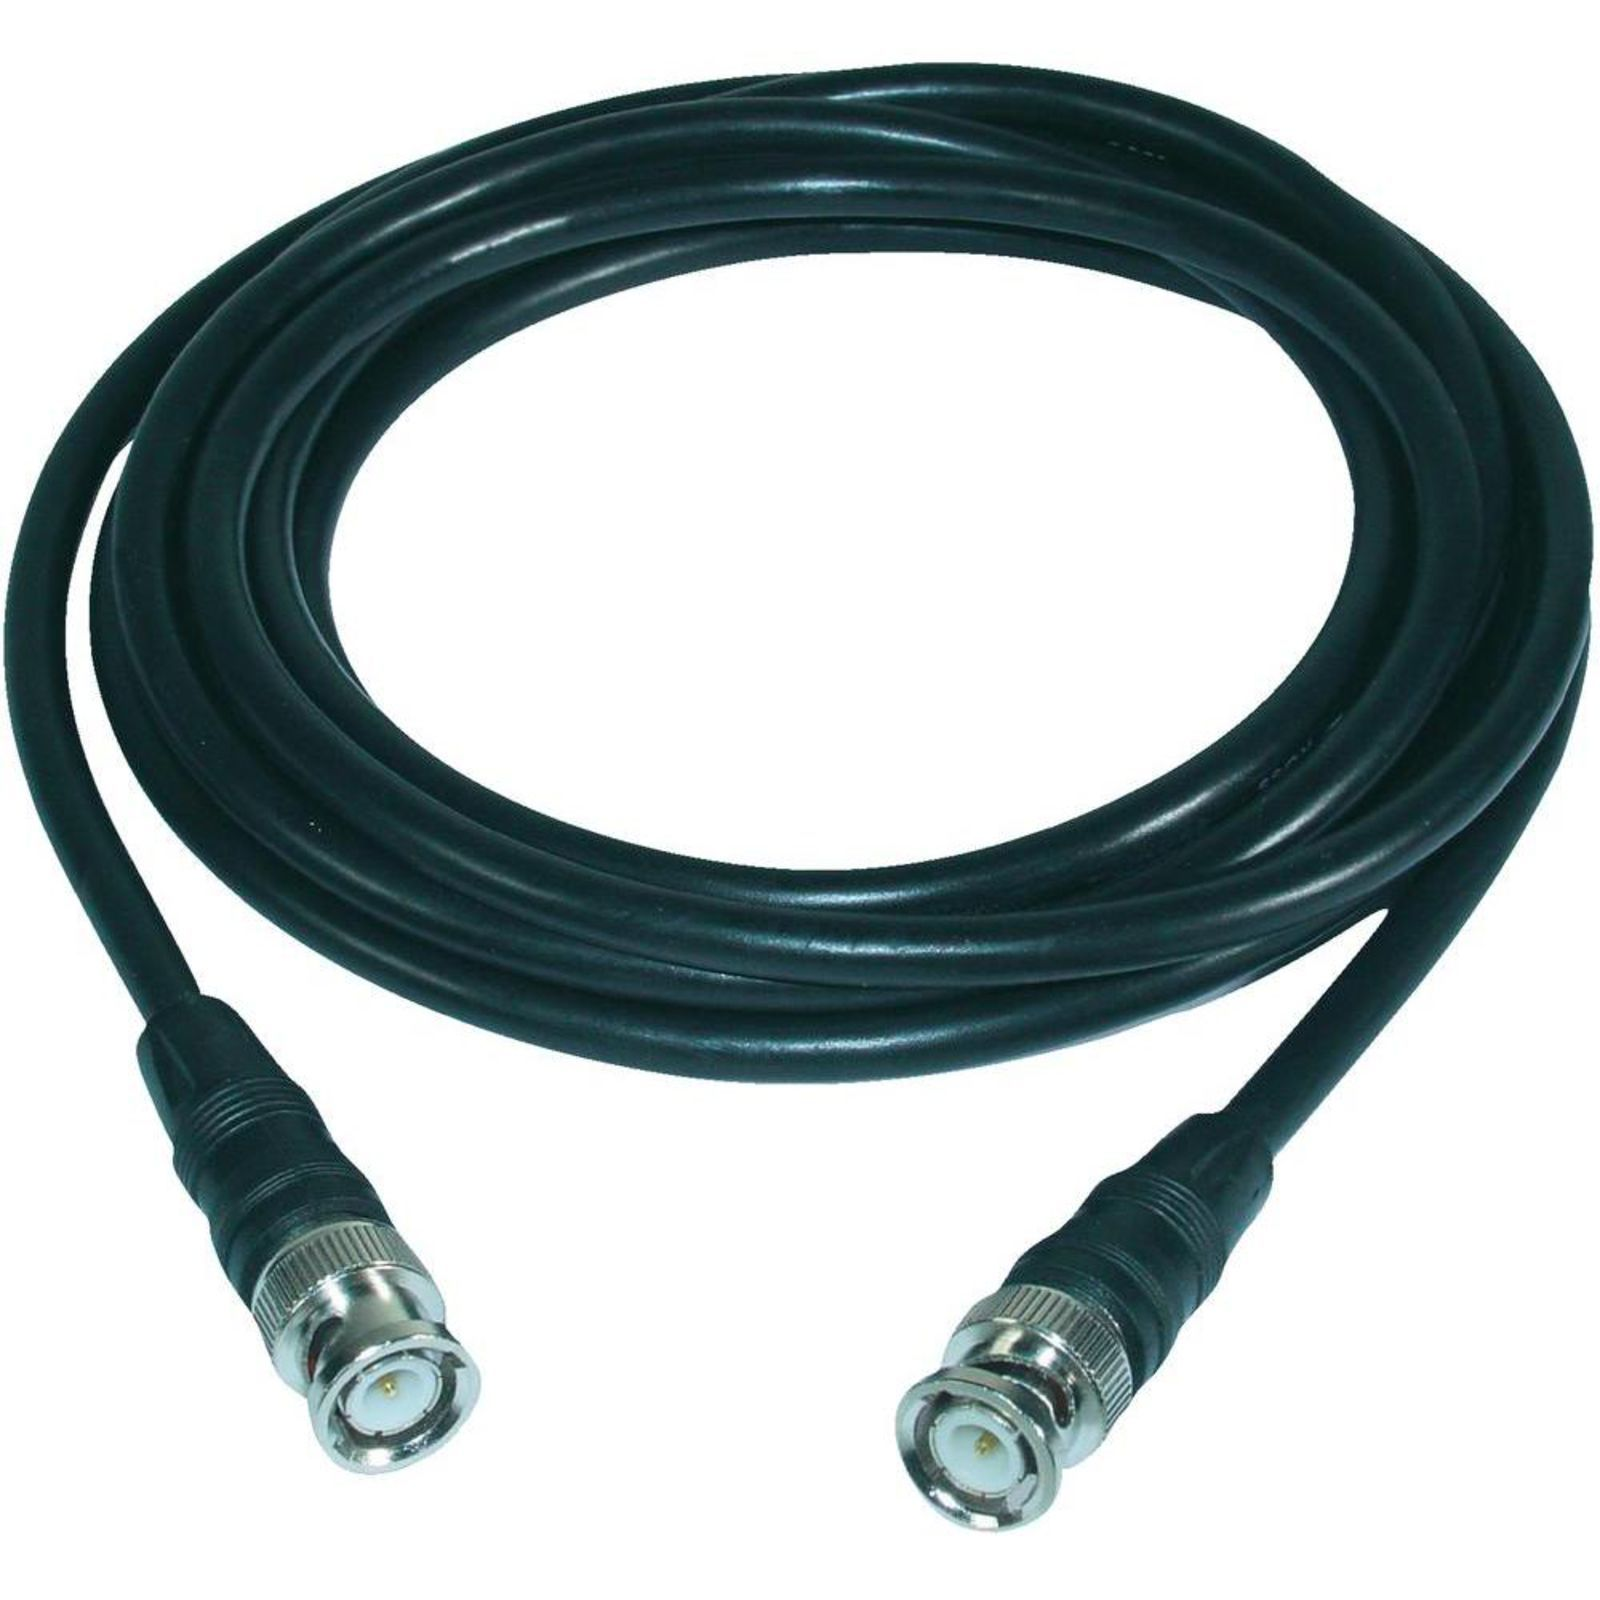 Sennheiser GZL 5000 A 20 BNC-Connection Cable 20m Produktbillede